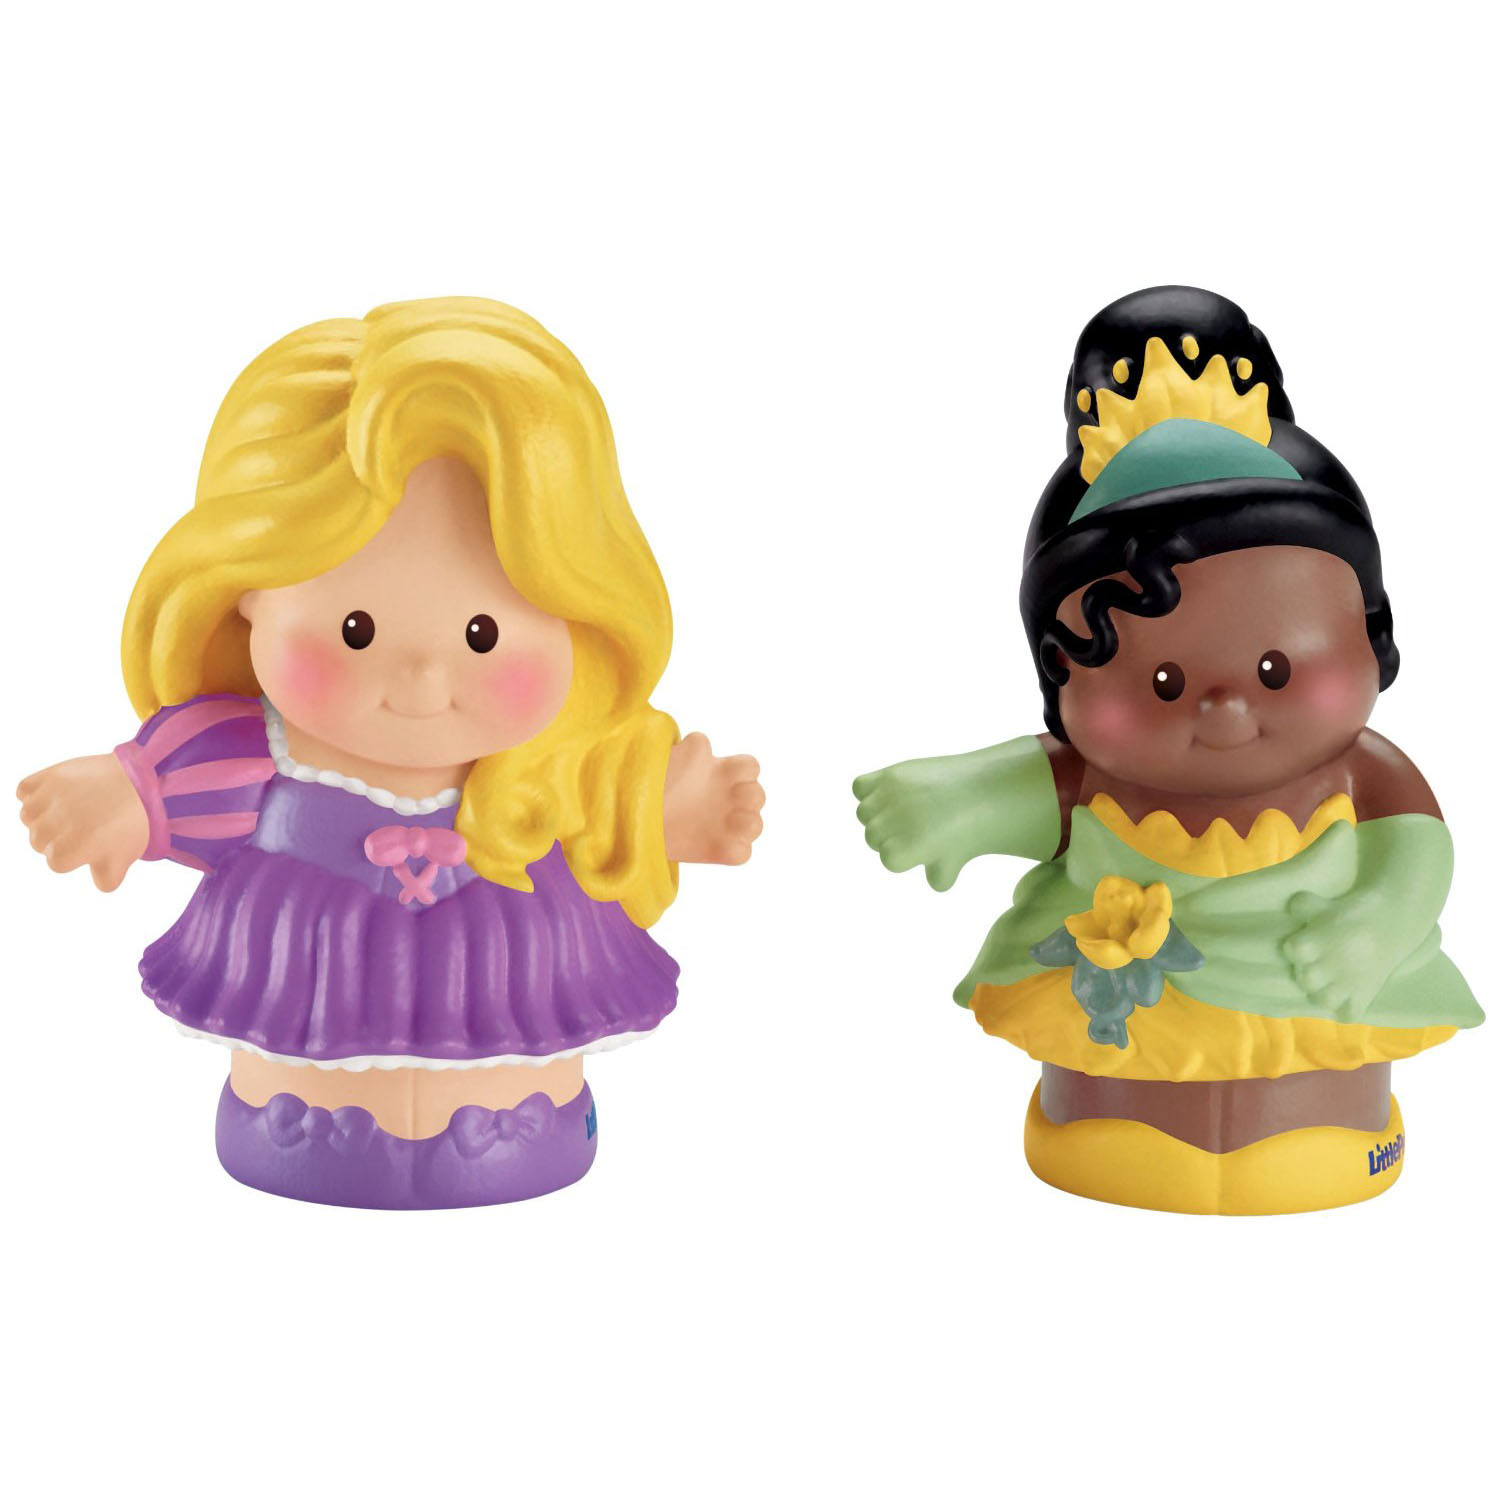 Disney Princess Toys Rapunzel And Tiana Little People 2